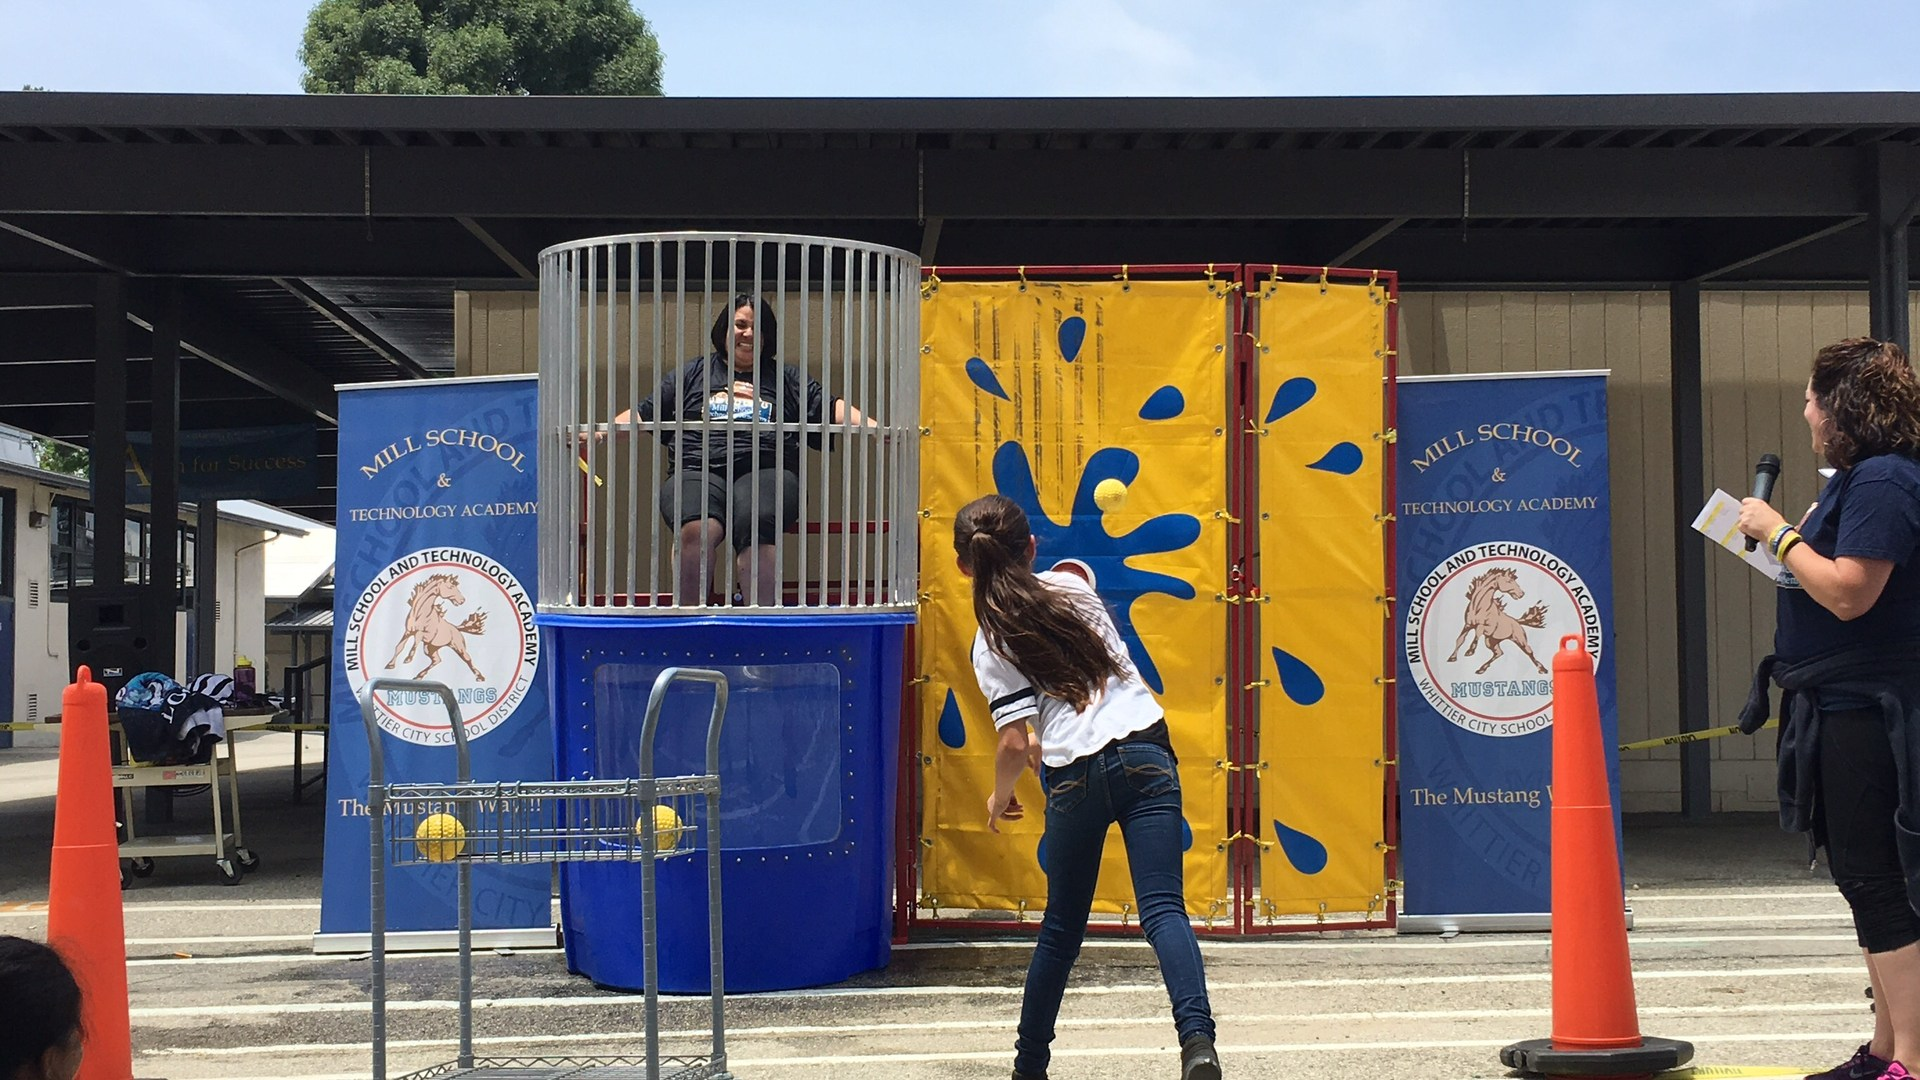 Dunk a teacher